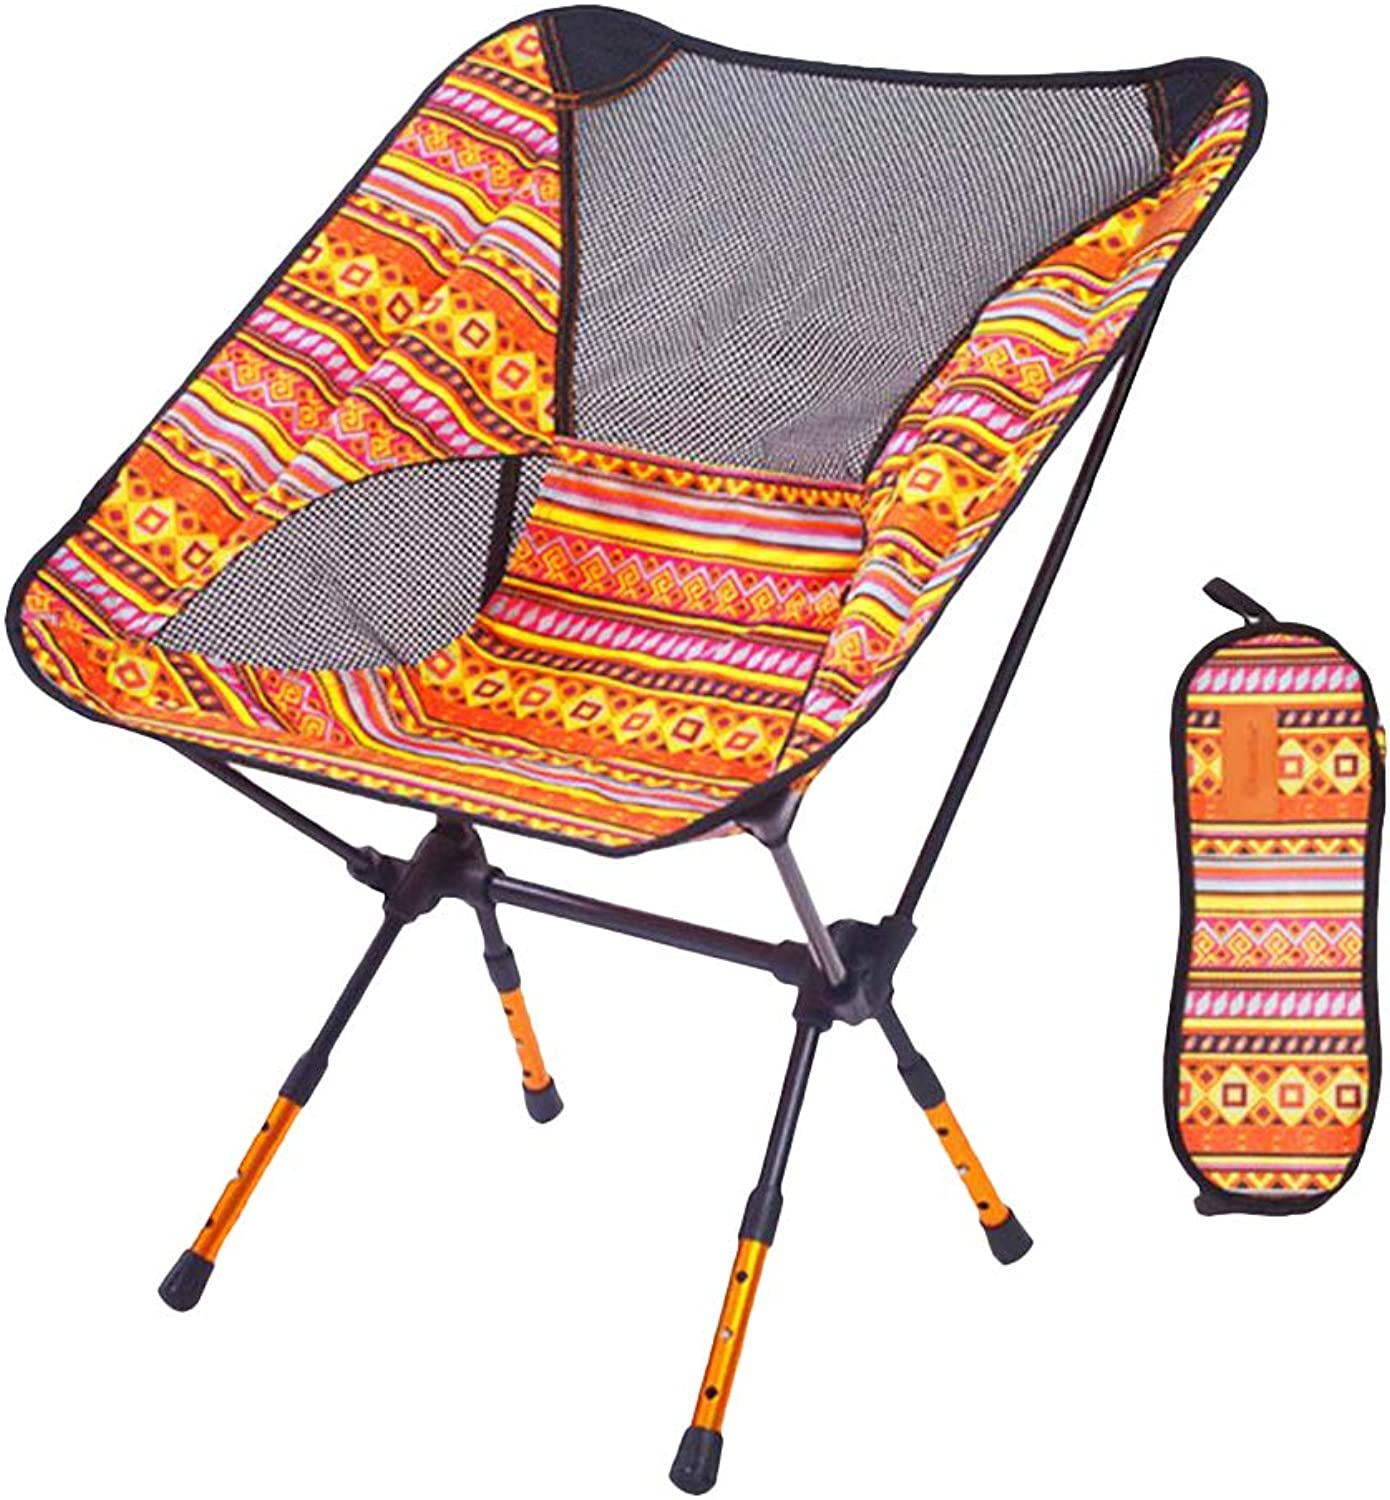 Prettyia UrltraLight Adjustable Height Folding Chair Camping BBQ Fishing Seat Beach Lounger with Storage Bag